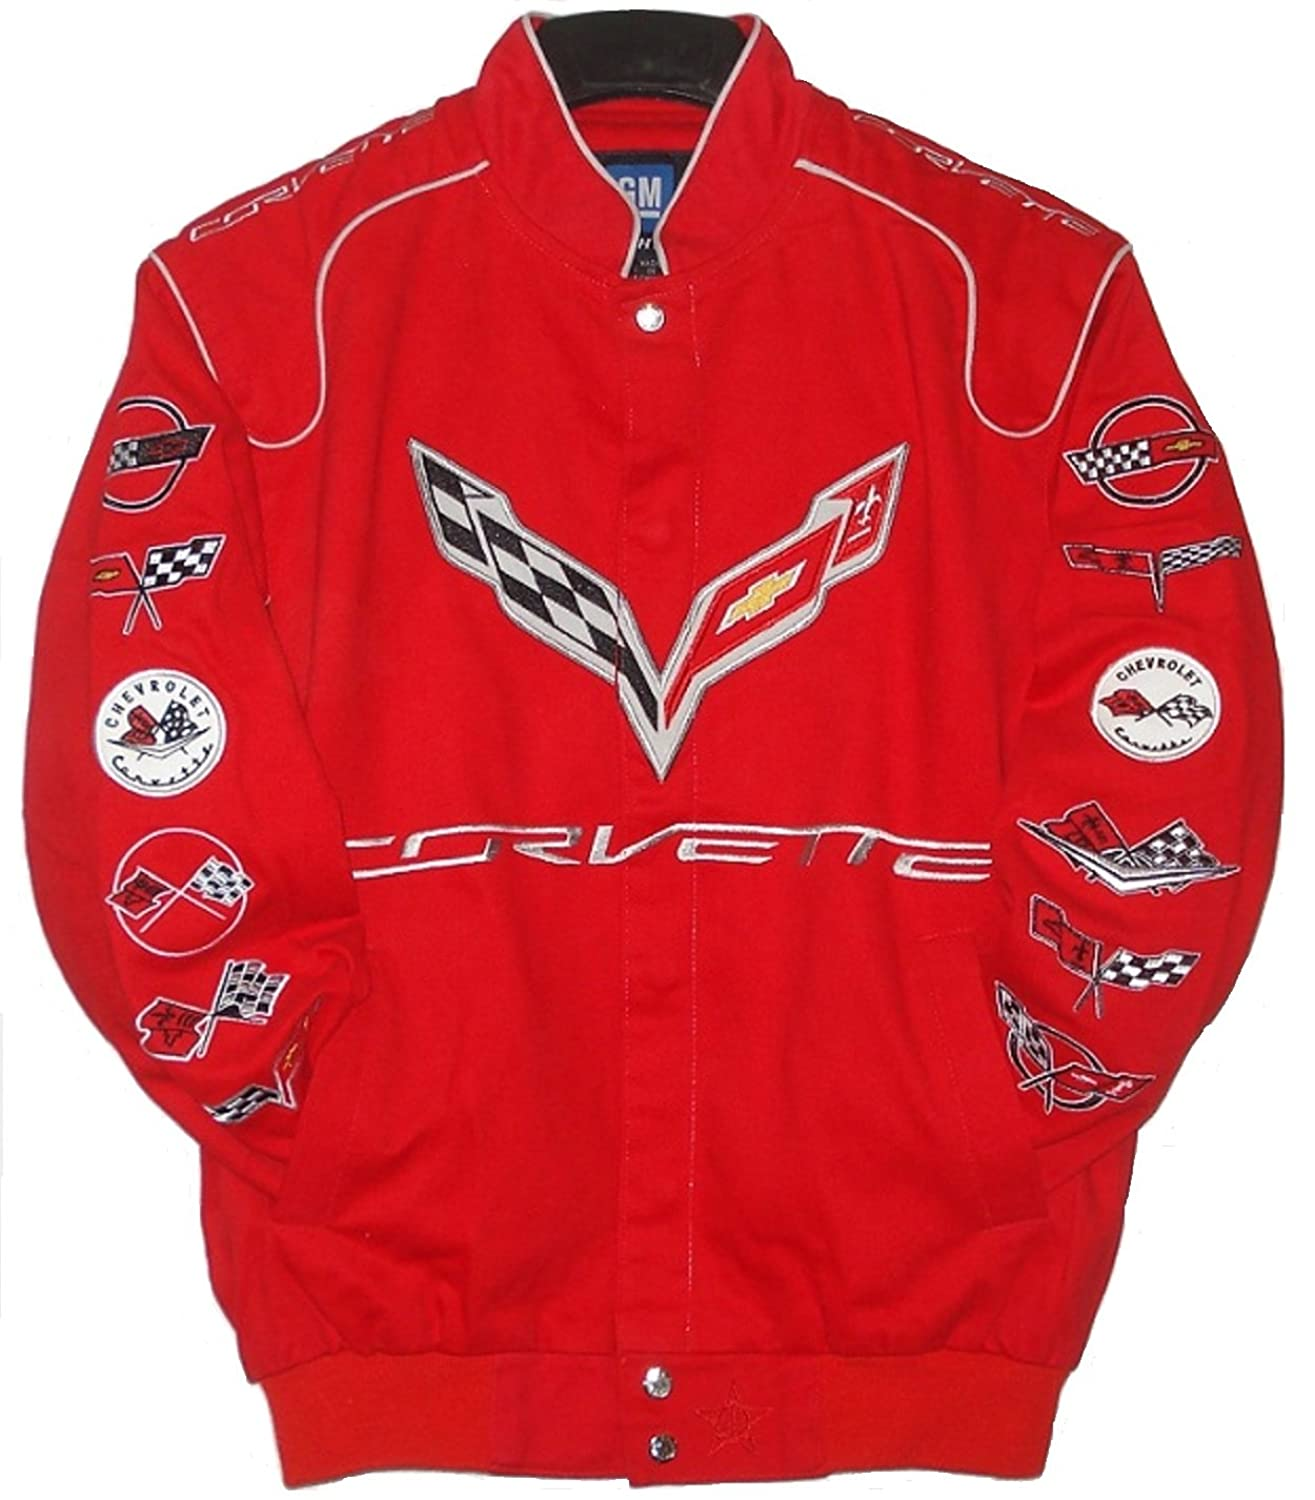 Chevy Racing Cotton Jacket Jh Design Size XLarge